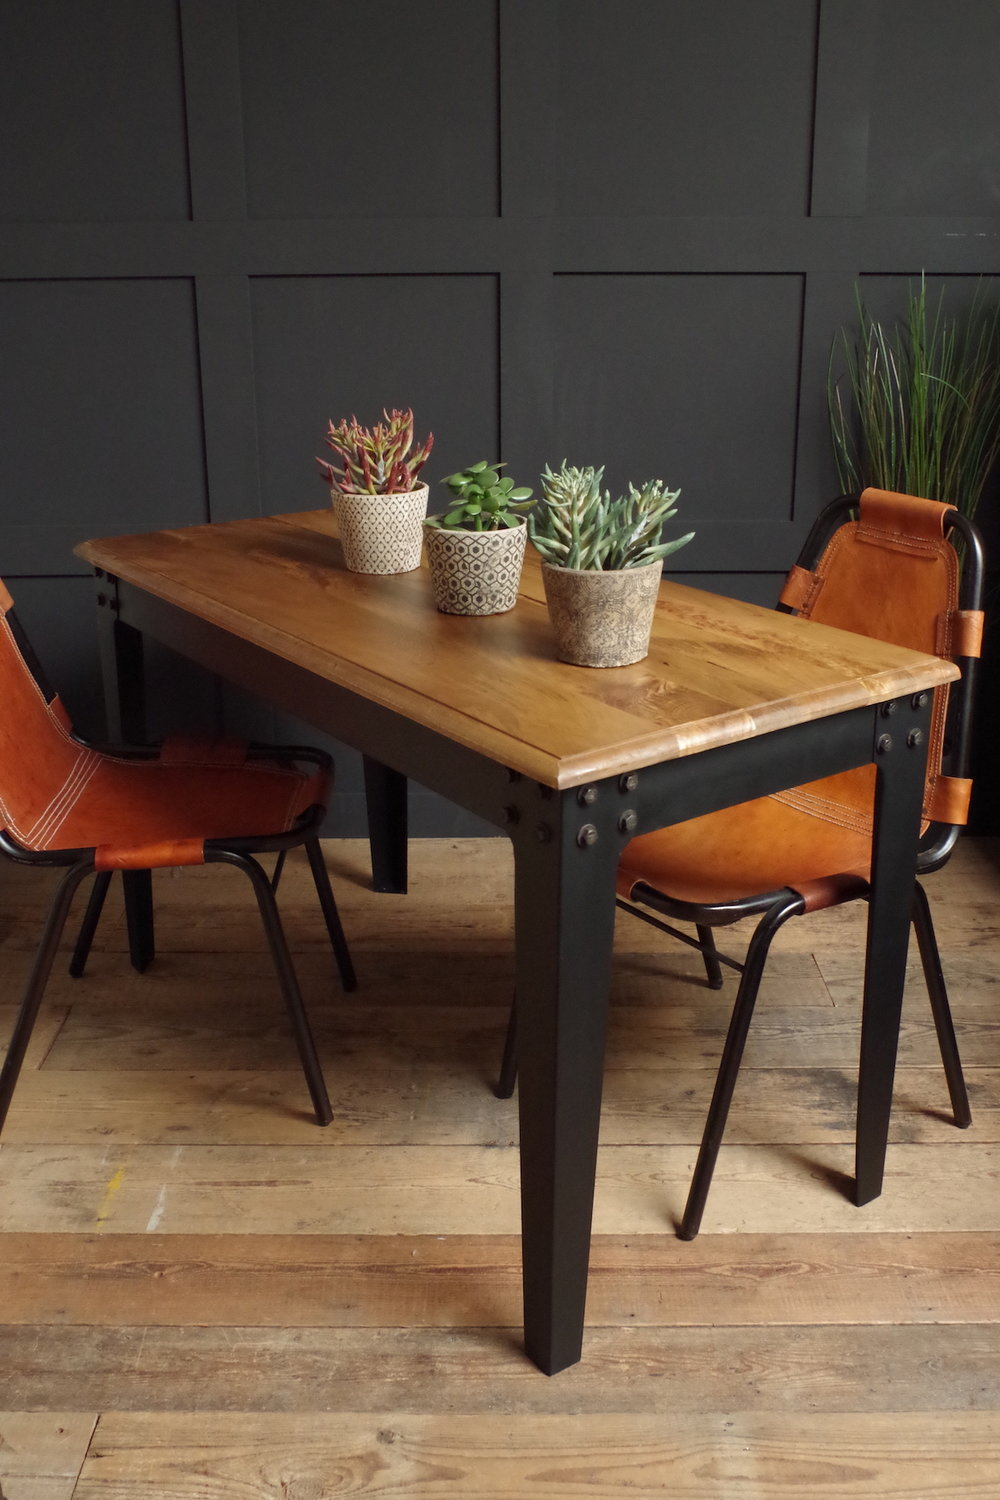 Image Credit: Vincent and Barn Ltd. Industrial Table - Medium.